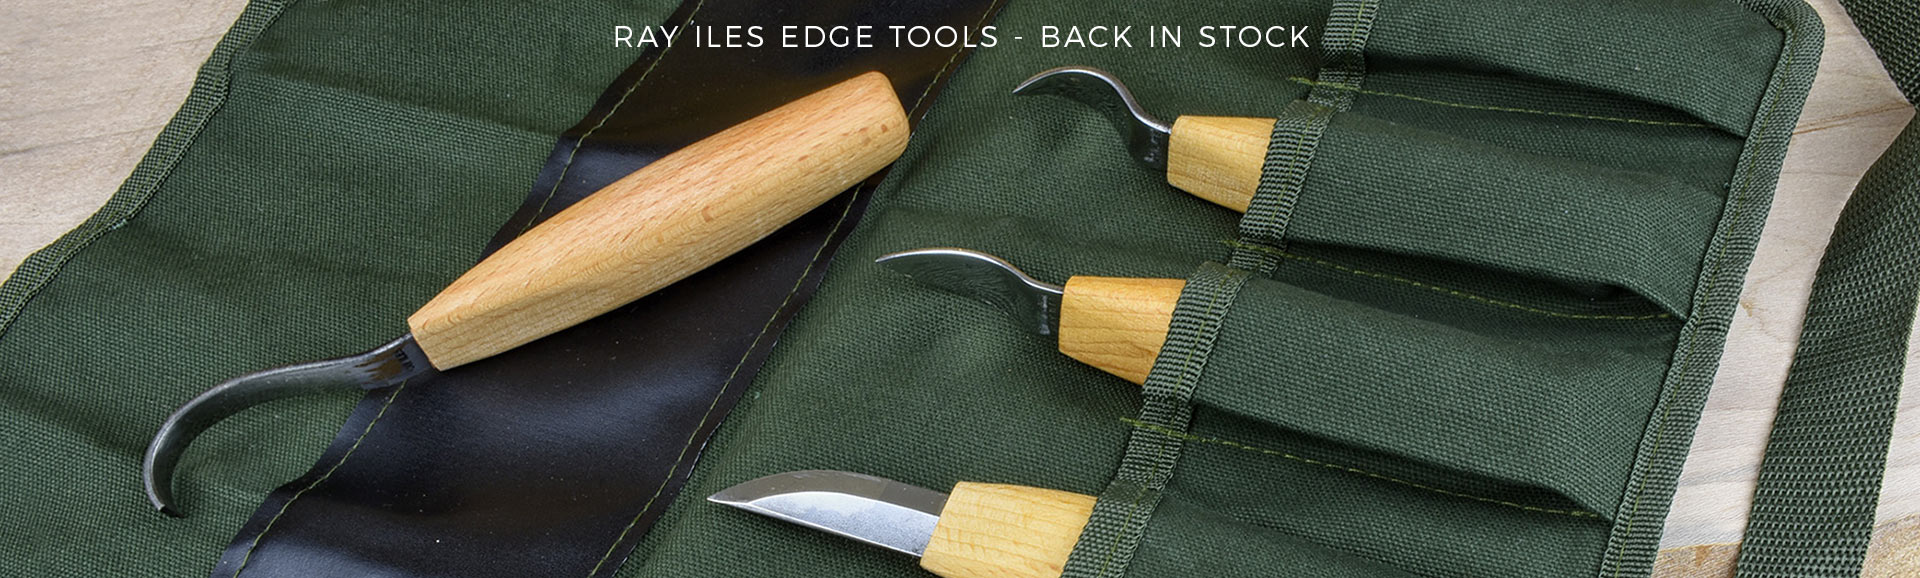 Ray Iles Carving Tools